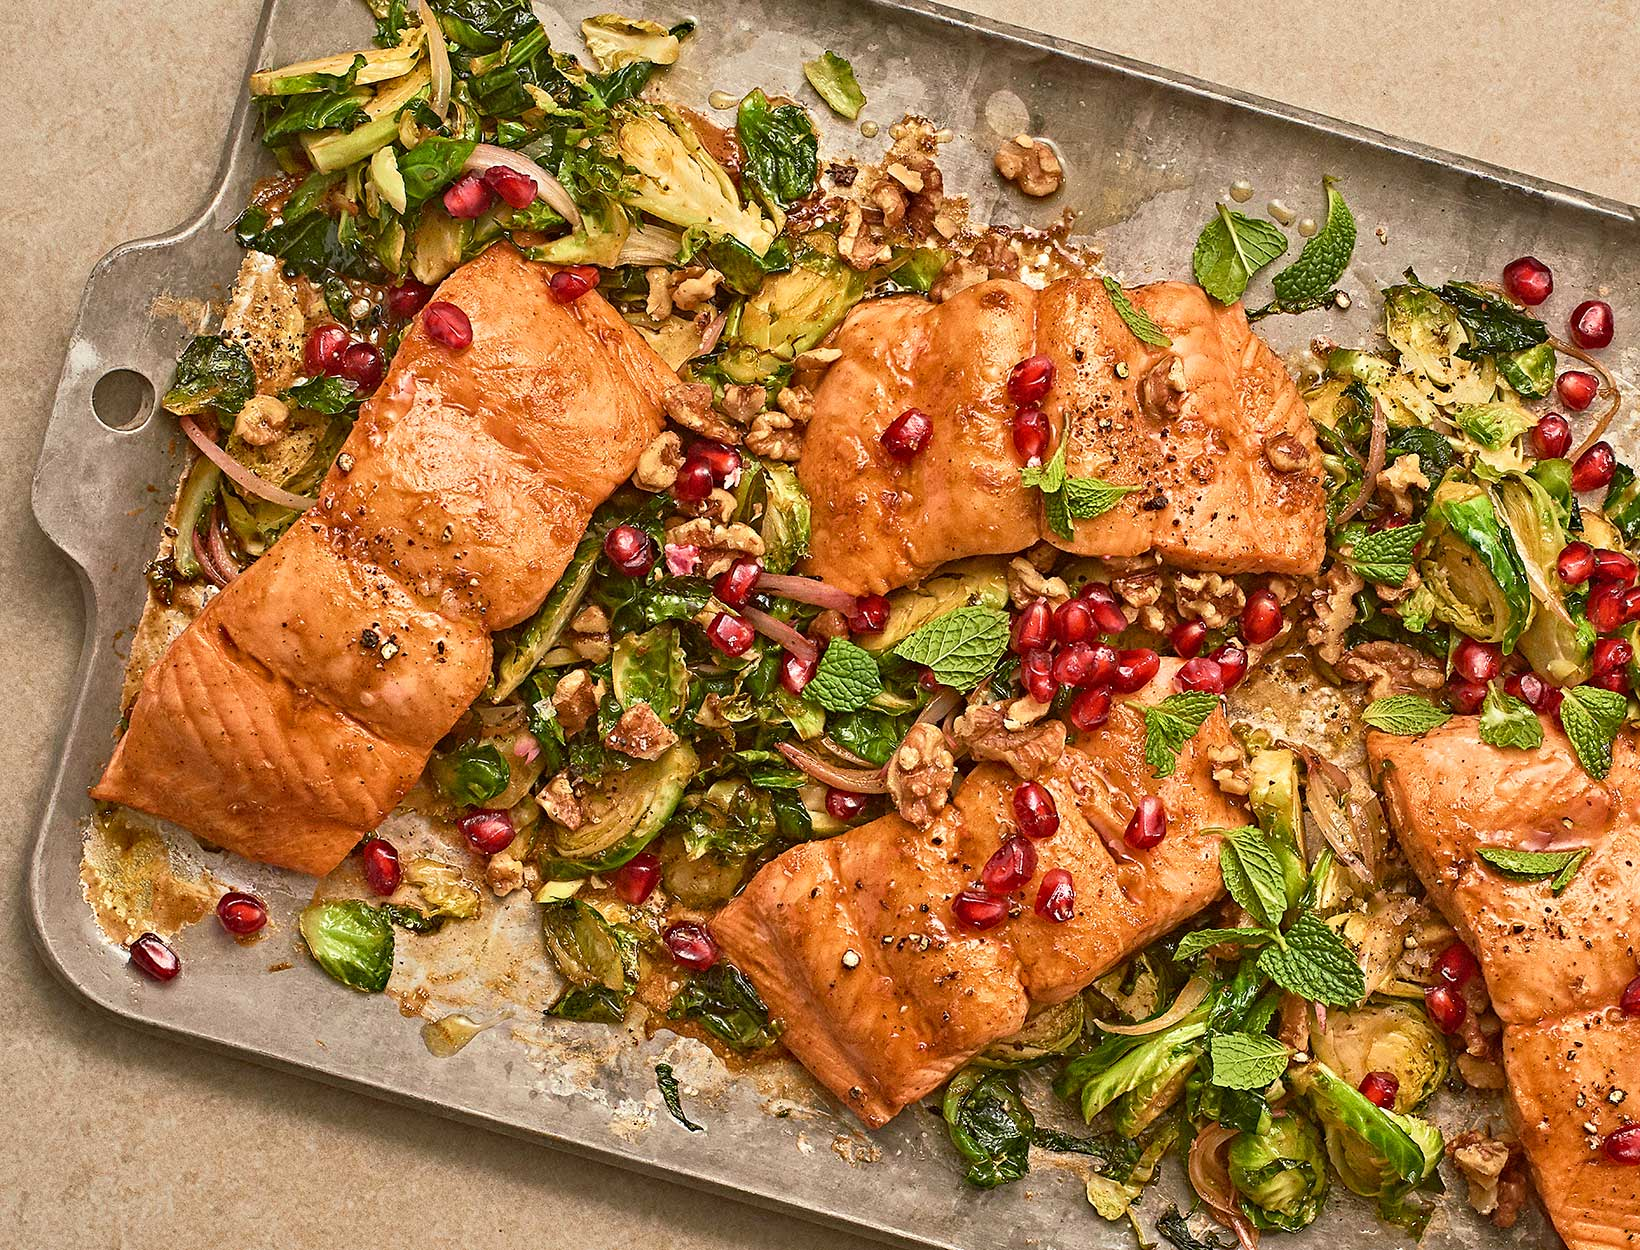 Sheet-Pan Salmon with Shaved Brussels Sprouts, Pomegranate, Walnuts, and Mint